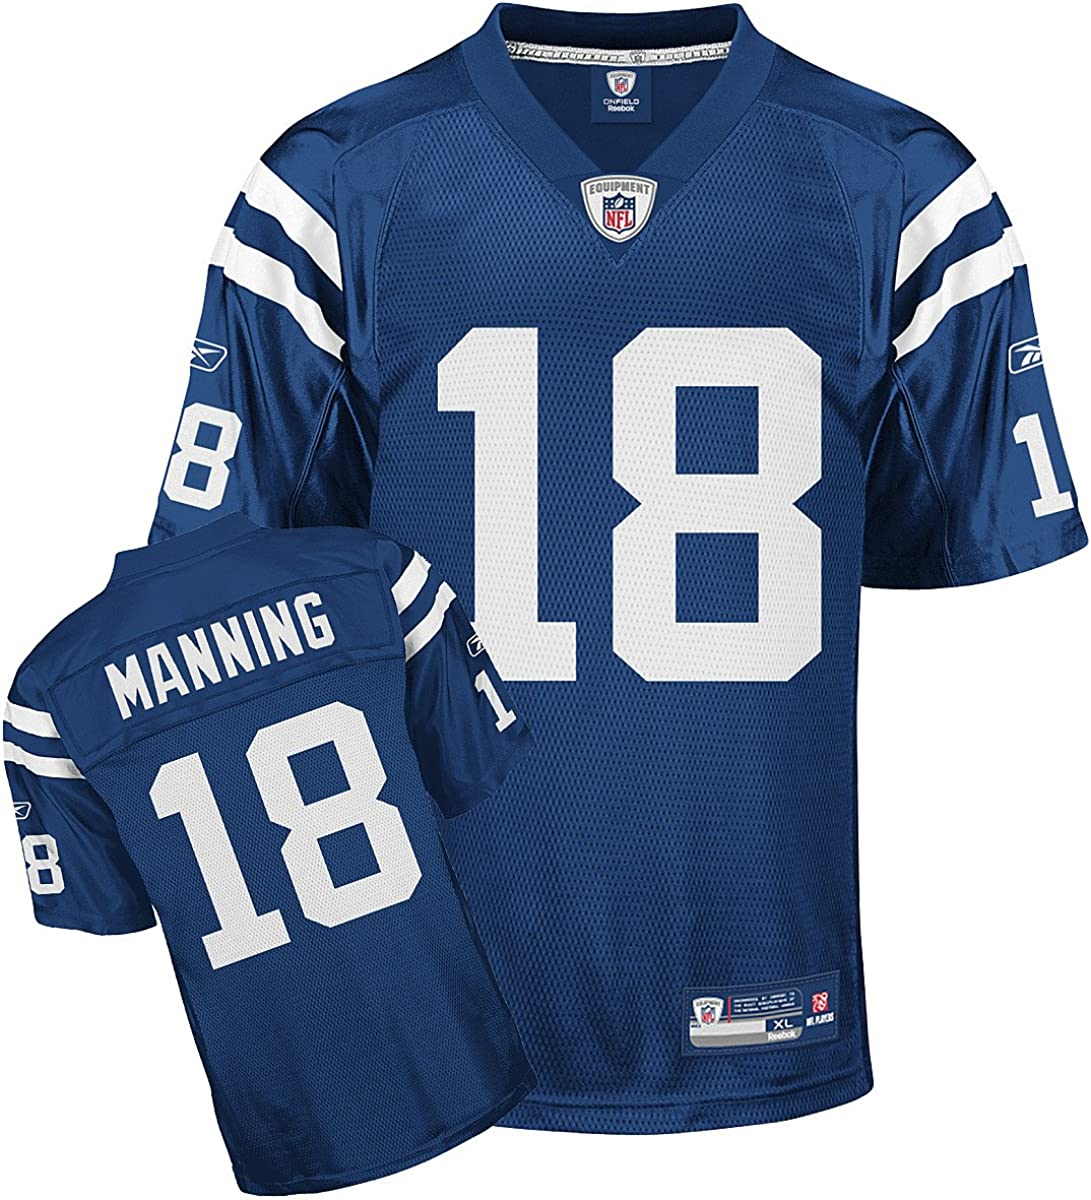 B0002LXXOM Peyton Manning #18 Indianapolis Colts NFL Royal Youth Replica Jersey 81A0TnFPzML